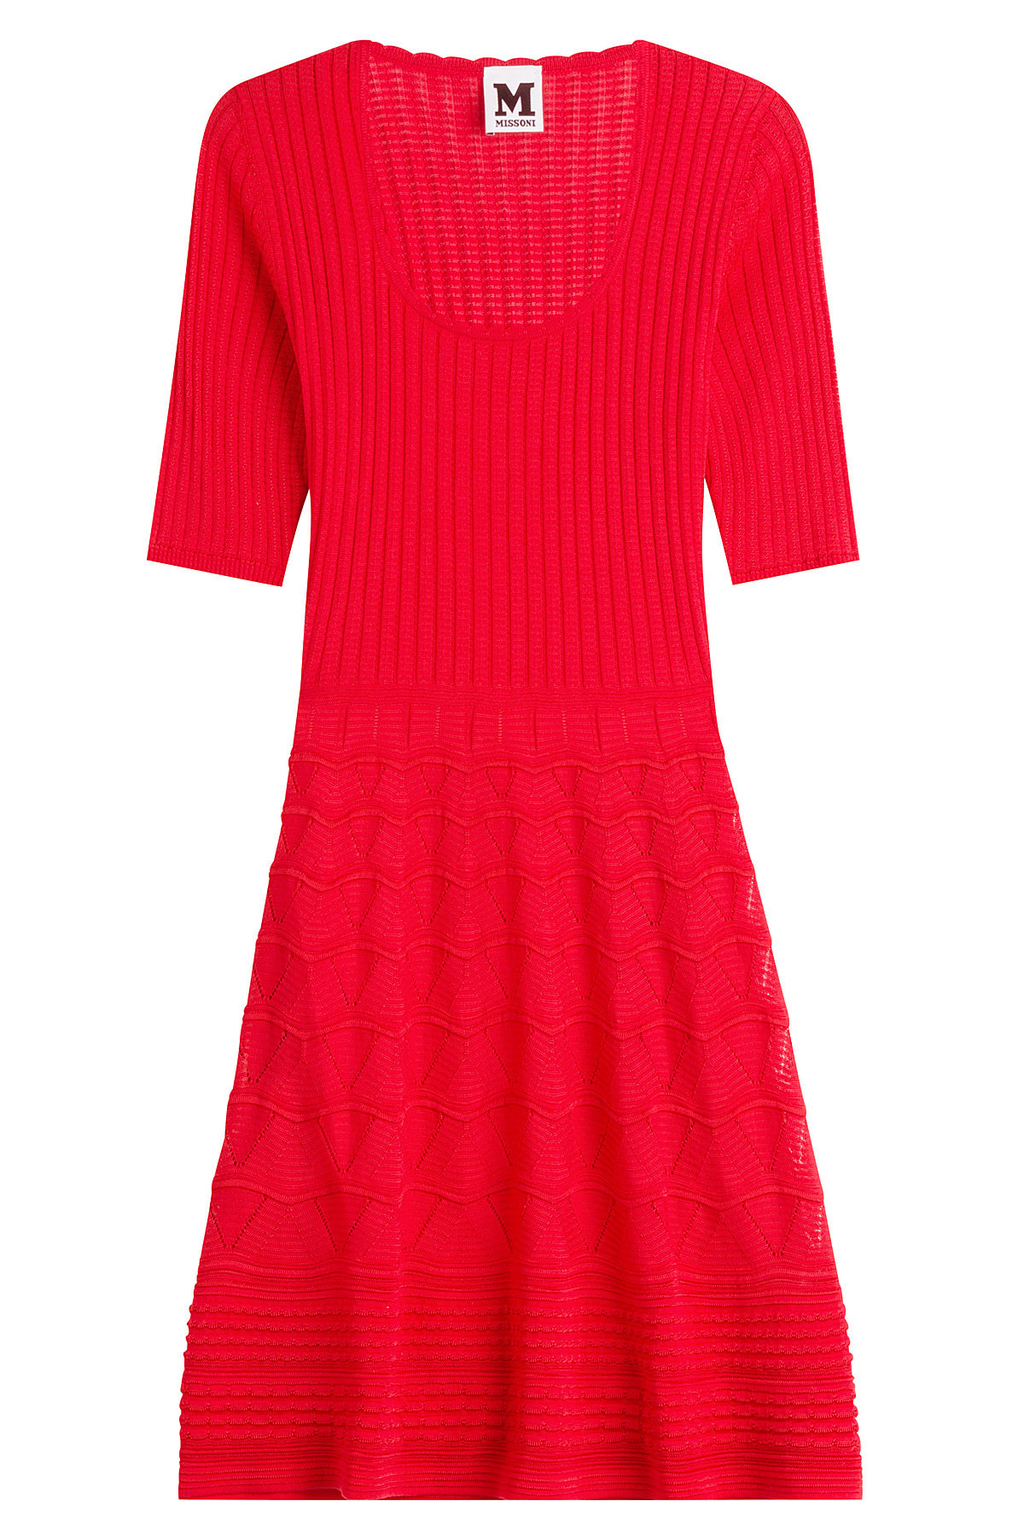 Cotton Blend Knit Dress - pattern: plain; predominant colour: true red; occasions: casual; length: on the knee; fit: fitted at waist & bust; style: fit & flare; neckline: scoop; fibres: cotton - mix; sleeve length: half sleeve; sleeve style: standard; pattern type: fabric; texture group: jersey - stretchy/drapey; season: s/s 2016; wardrobe: highlight